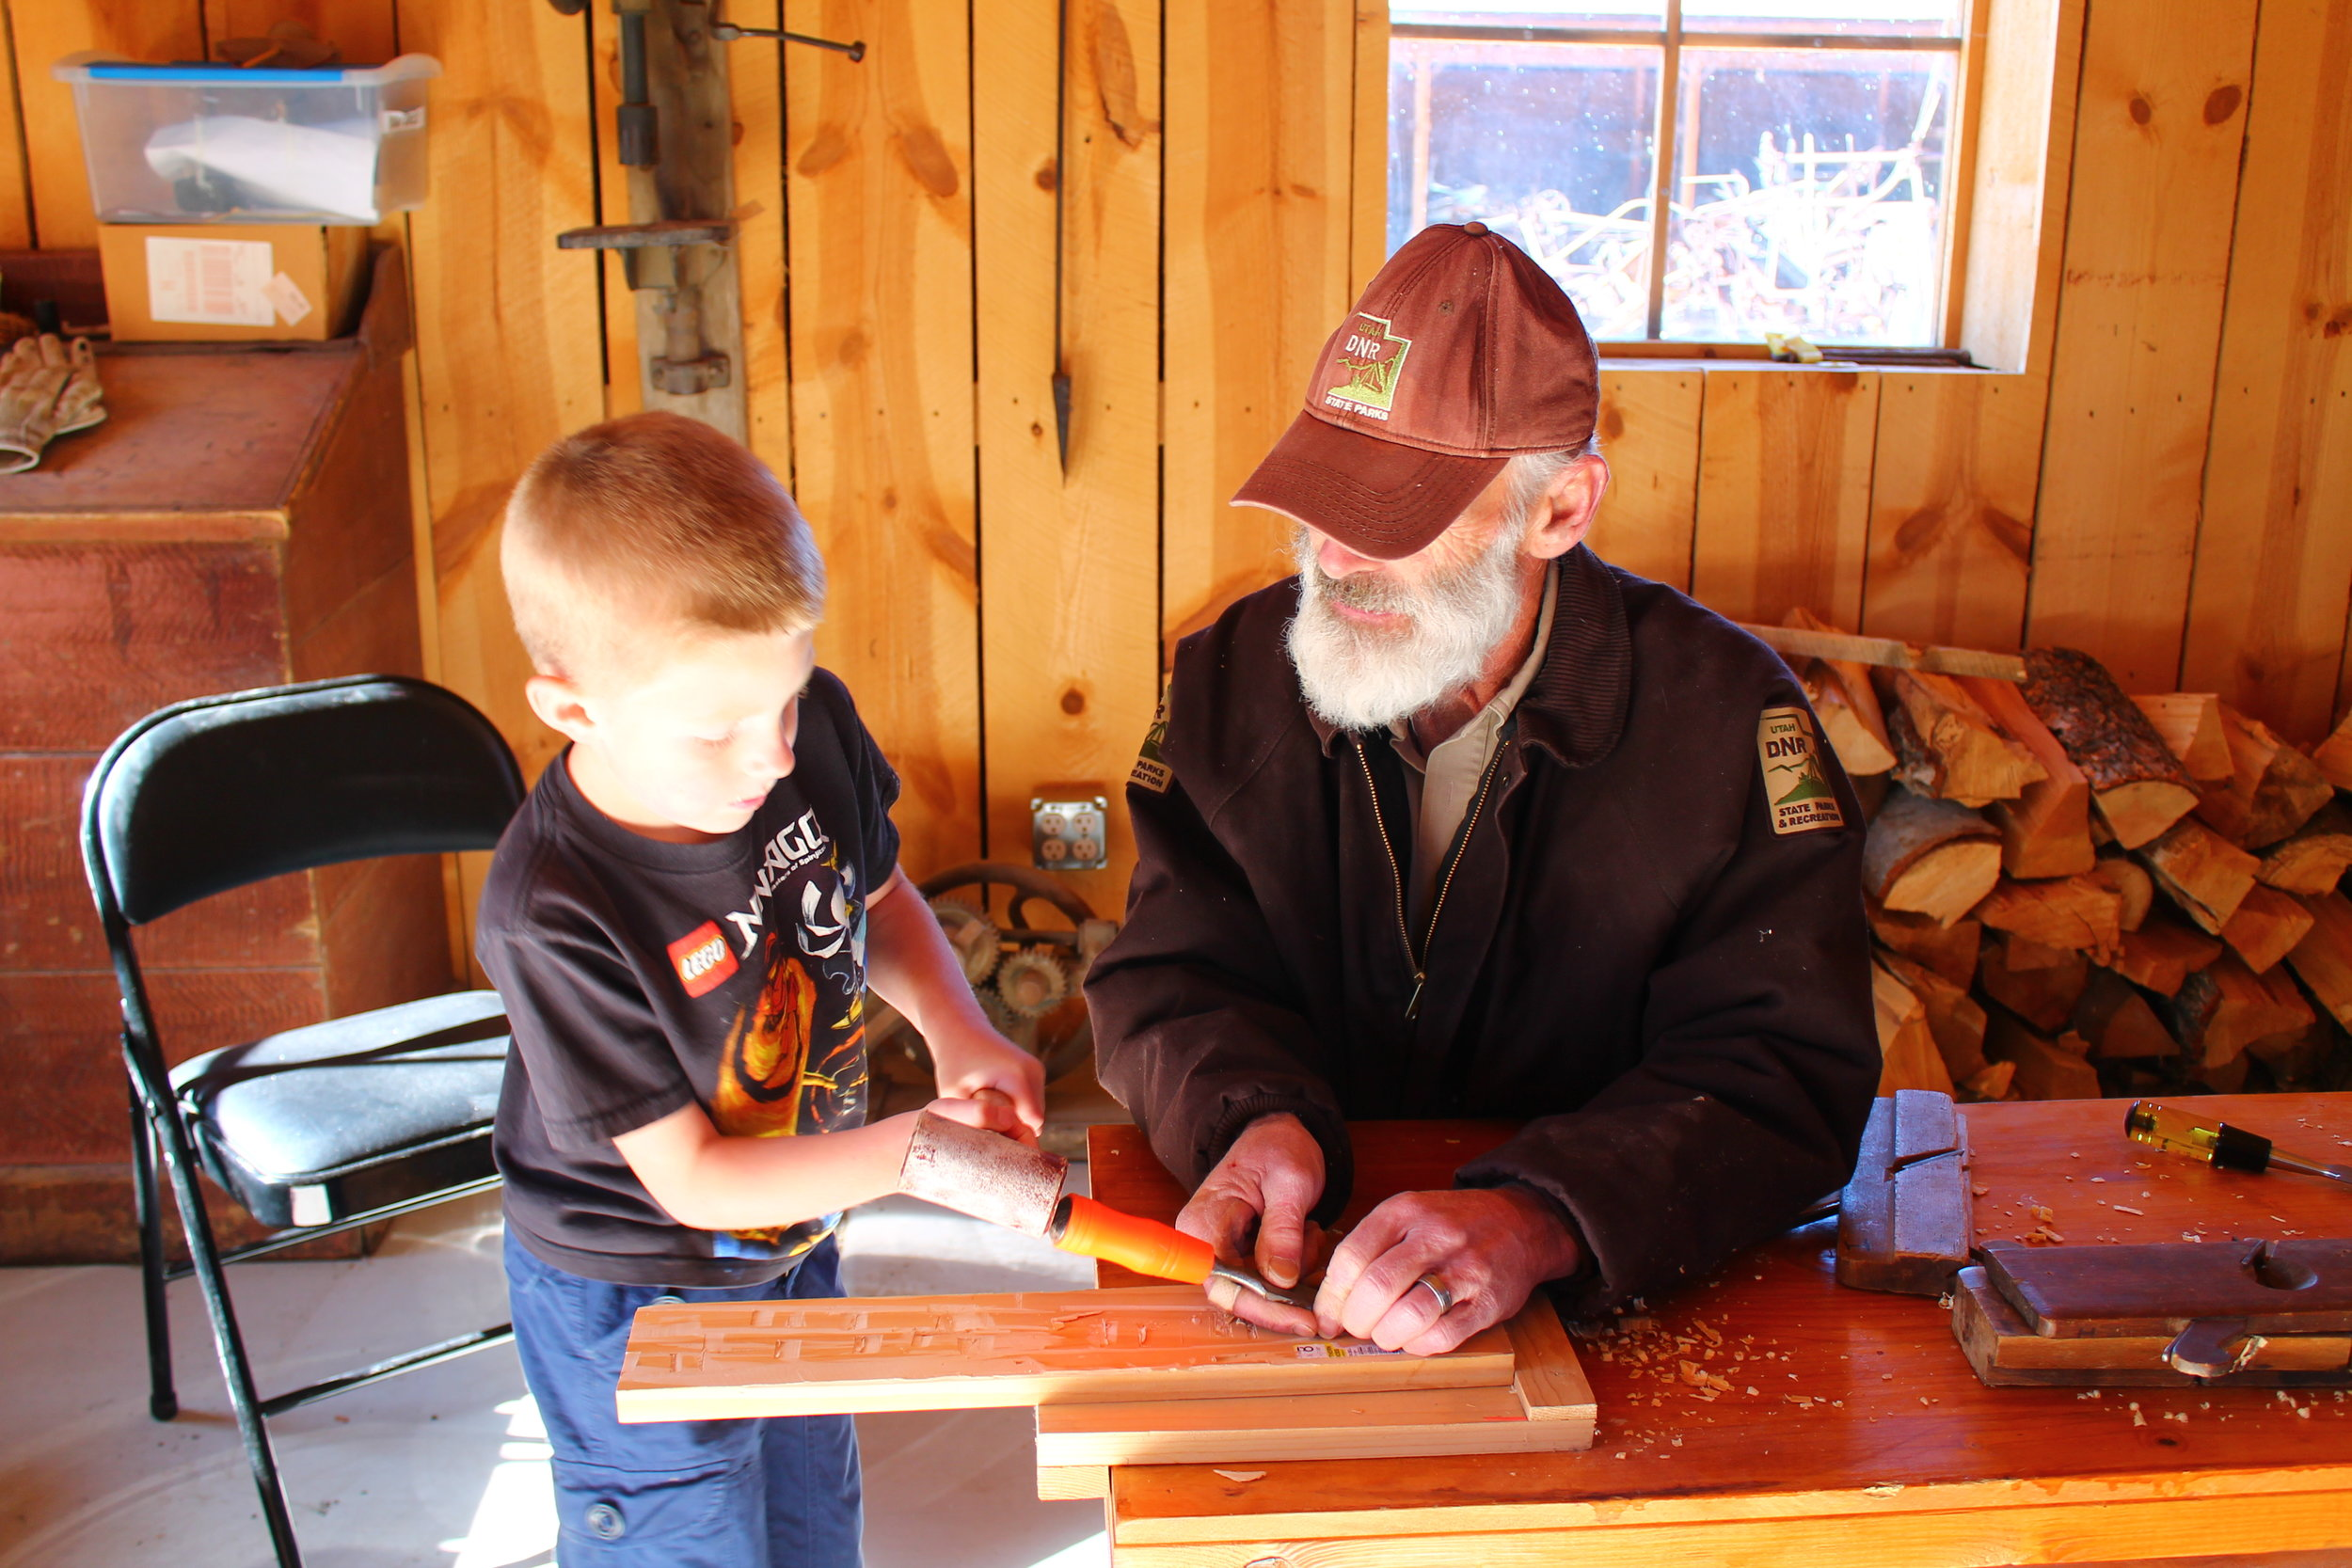 Pioneer wood working for all ages.